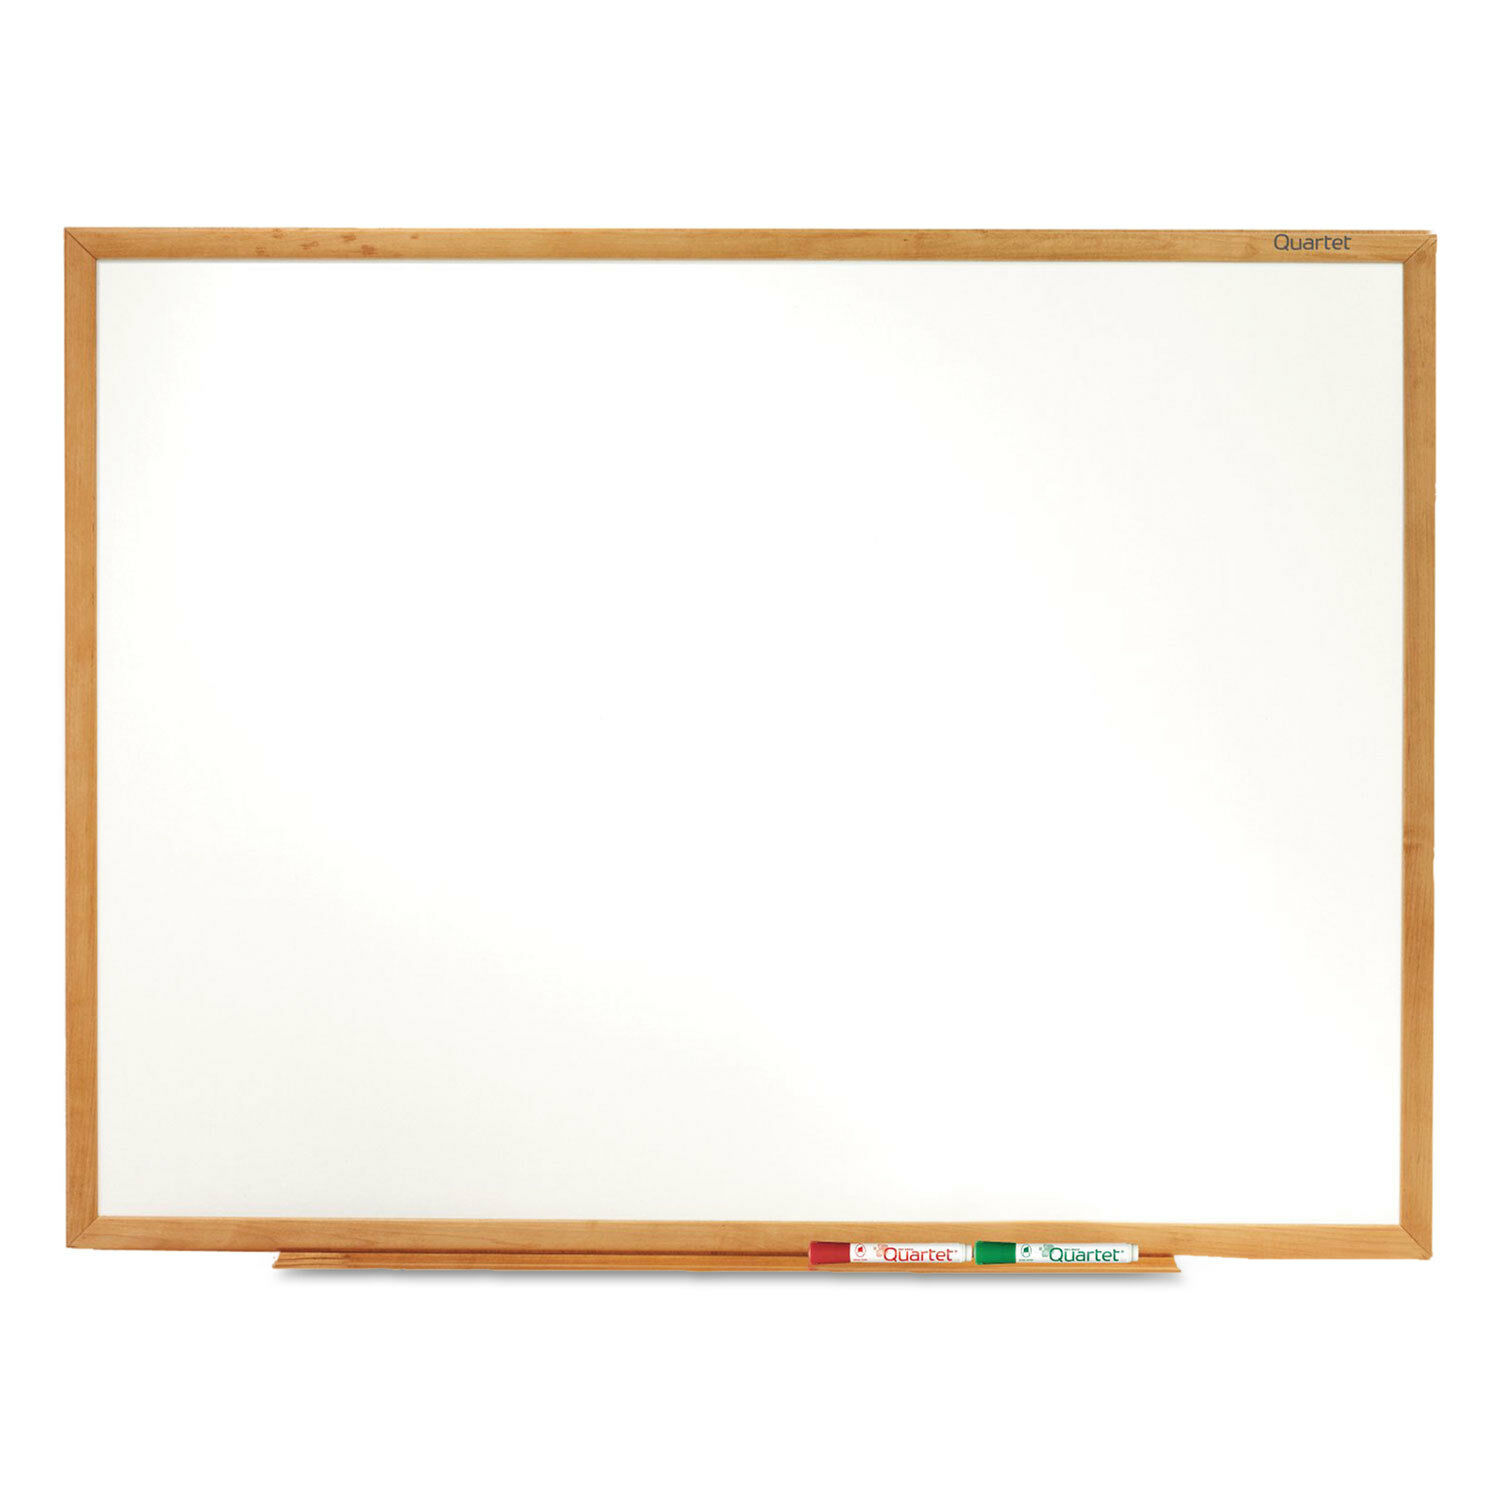 Quartet Classic Melamine Whiteboard 72 x 48 Oak Finish Frame S577